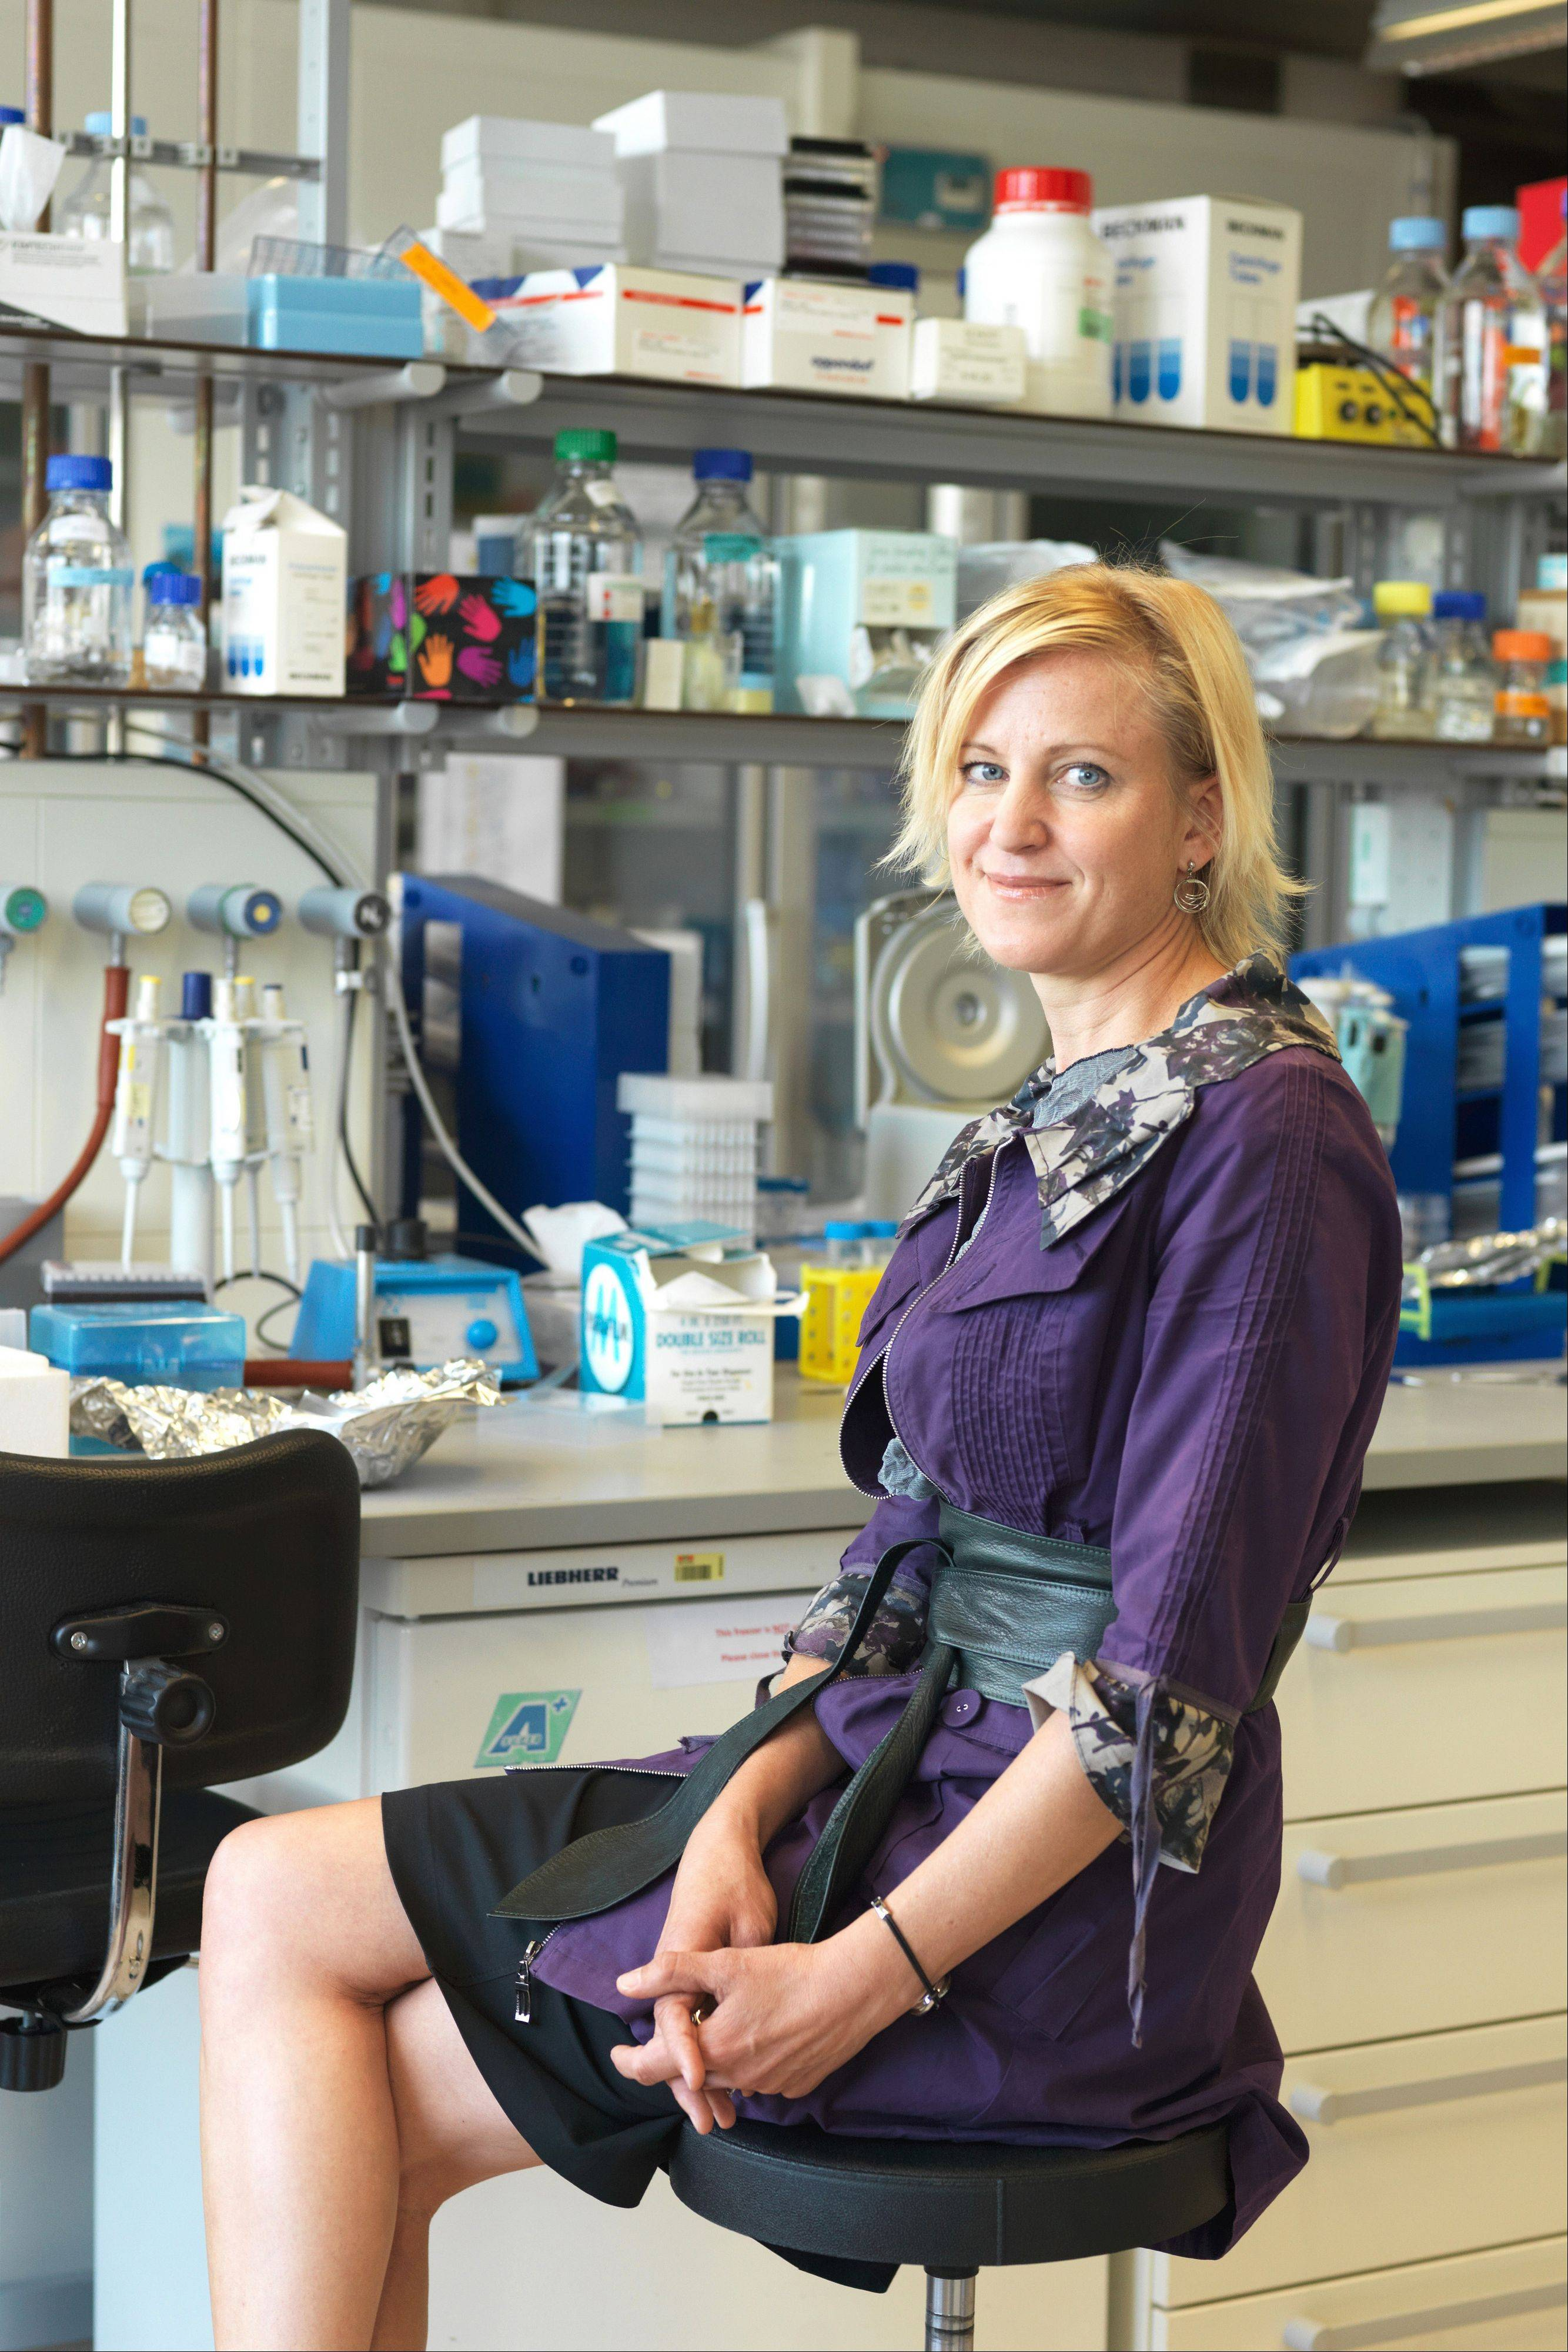 Bioengineer Melody Swartz, a 1987 graduate of Glenbard West High School, has been named one of 23 new MacArthur Fellows for 2012. She will receive $500,000 in �no-strings-attached support� over the next five years from the John D. and Catherine T. MacArthur Foundation. $PHOTOCREDIT_ON$Courtesy of the John D. and Catherine T. MacArthur Foundation $PHOTOCREDIT_OFF$